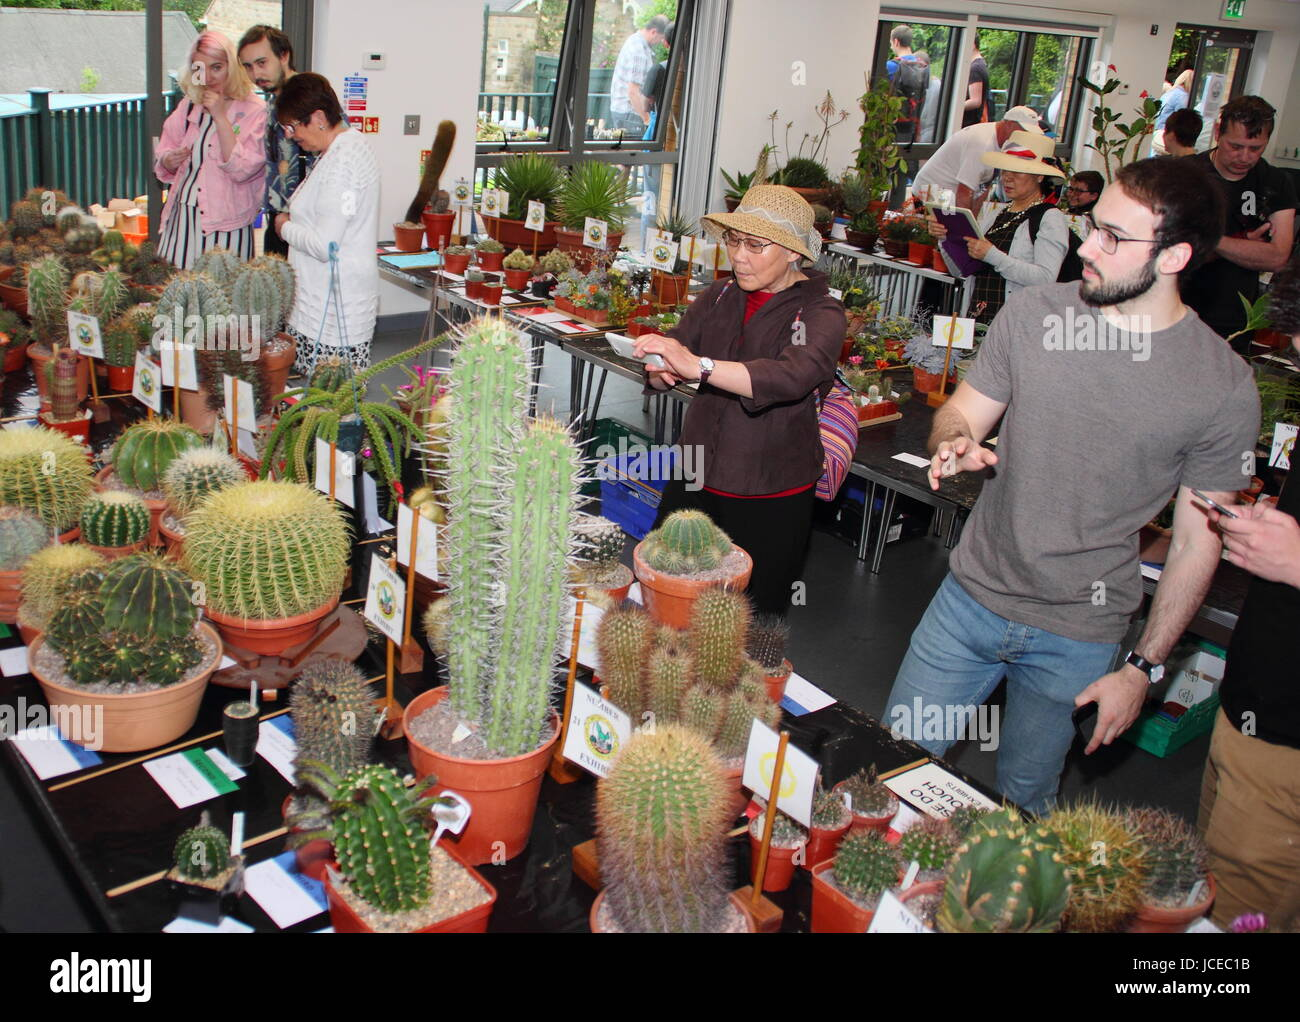 Visitors peruse displays at an annual cacti show organised by the Sheffield branch of the British Cactus and Succulent - Stock Image